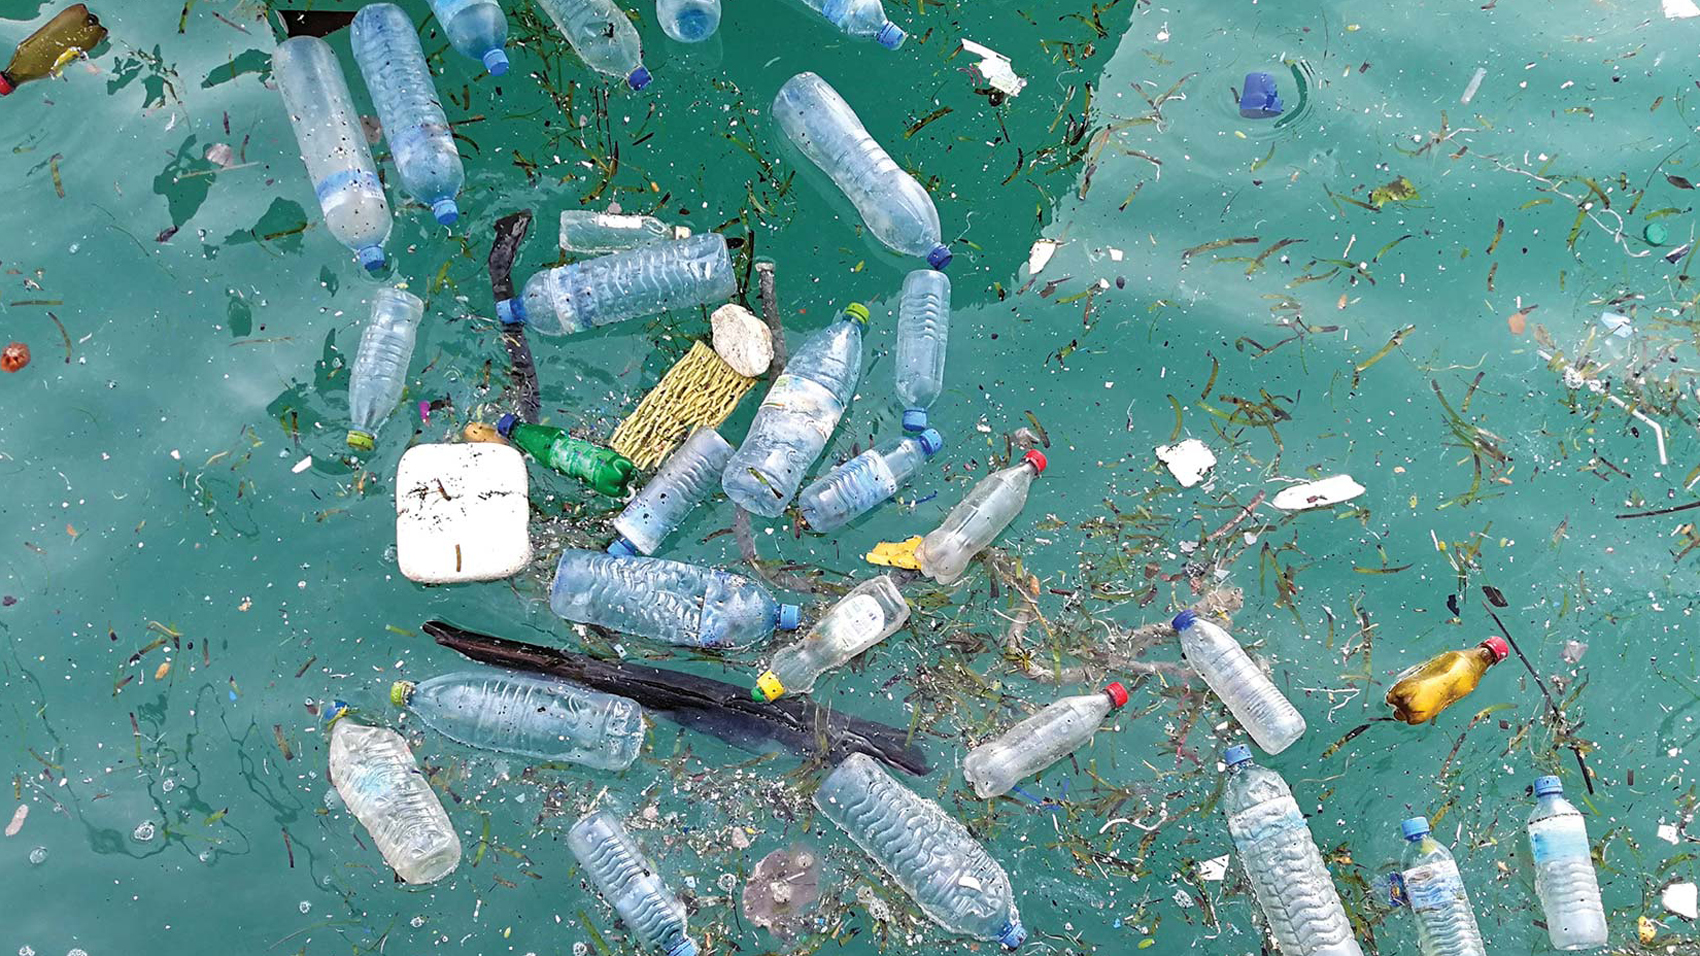 plastic bottles and garbage in the ocean